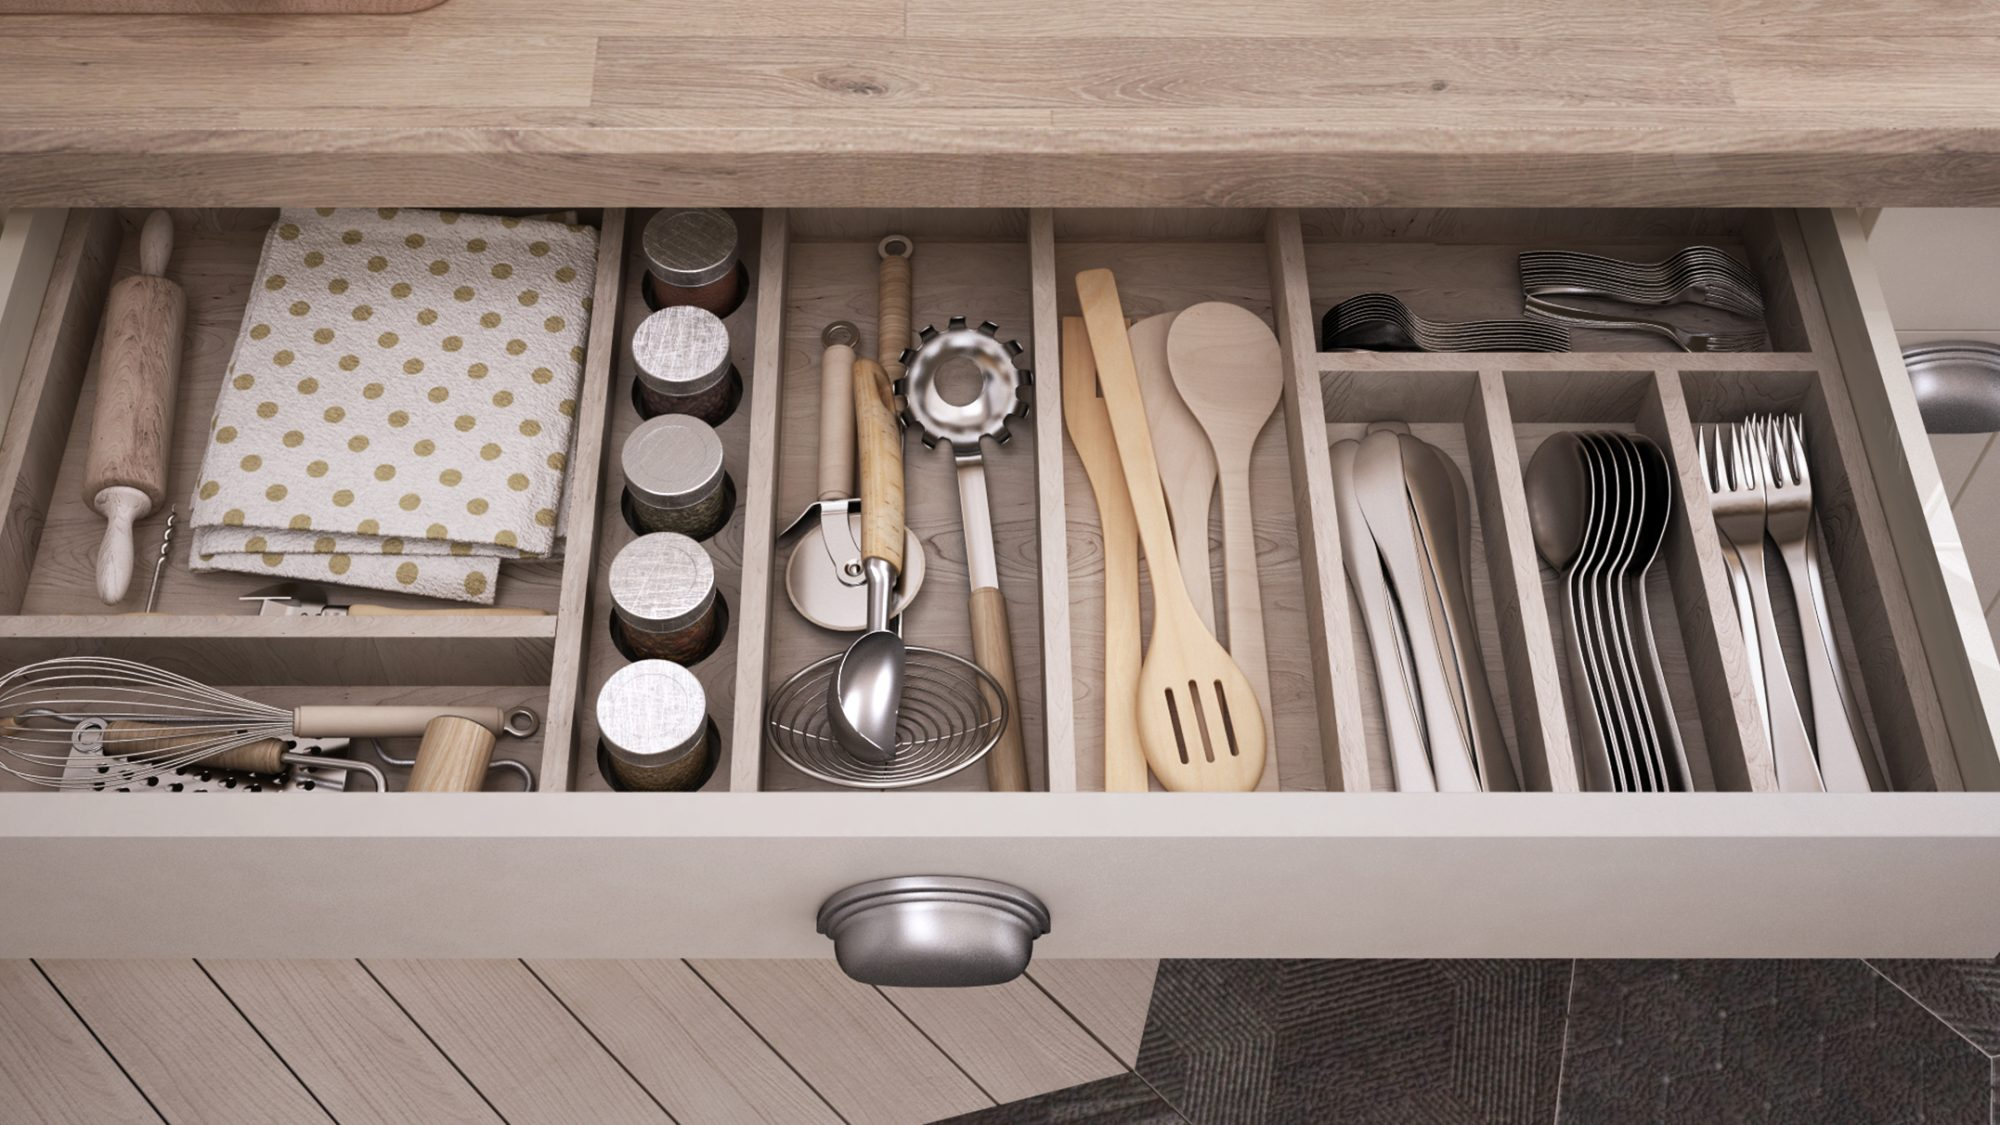 Stress organize a kitchen utensil drawer